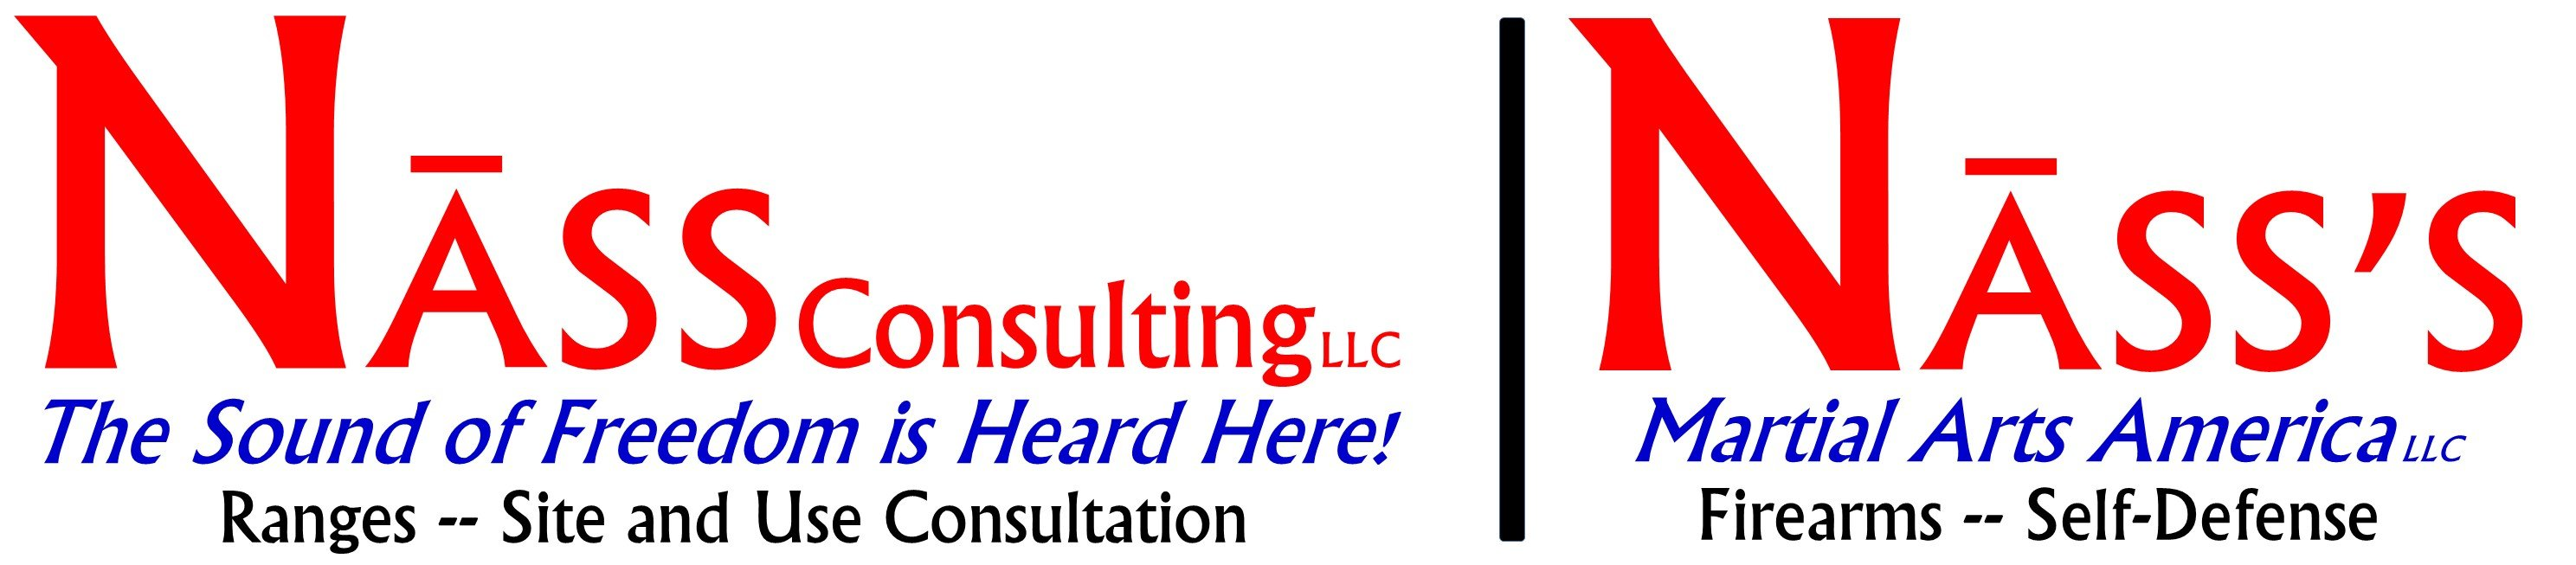 Nass Consulting LLC